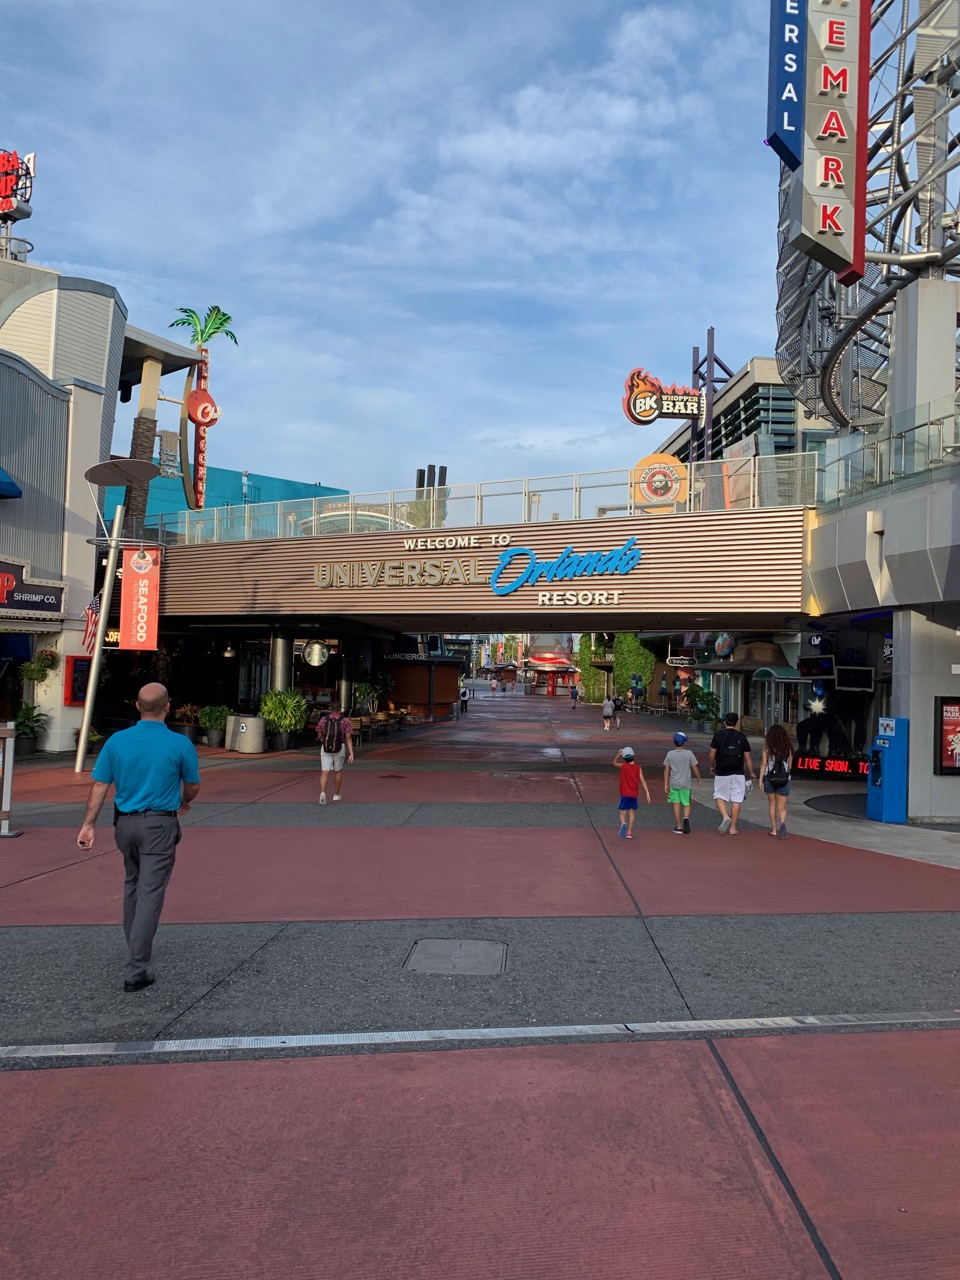 Universal Orlando Trip Planning Guide (2020) - Mouse Hacking